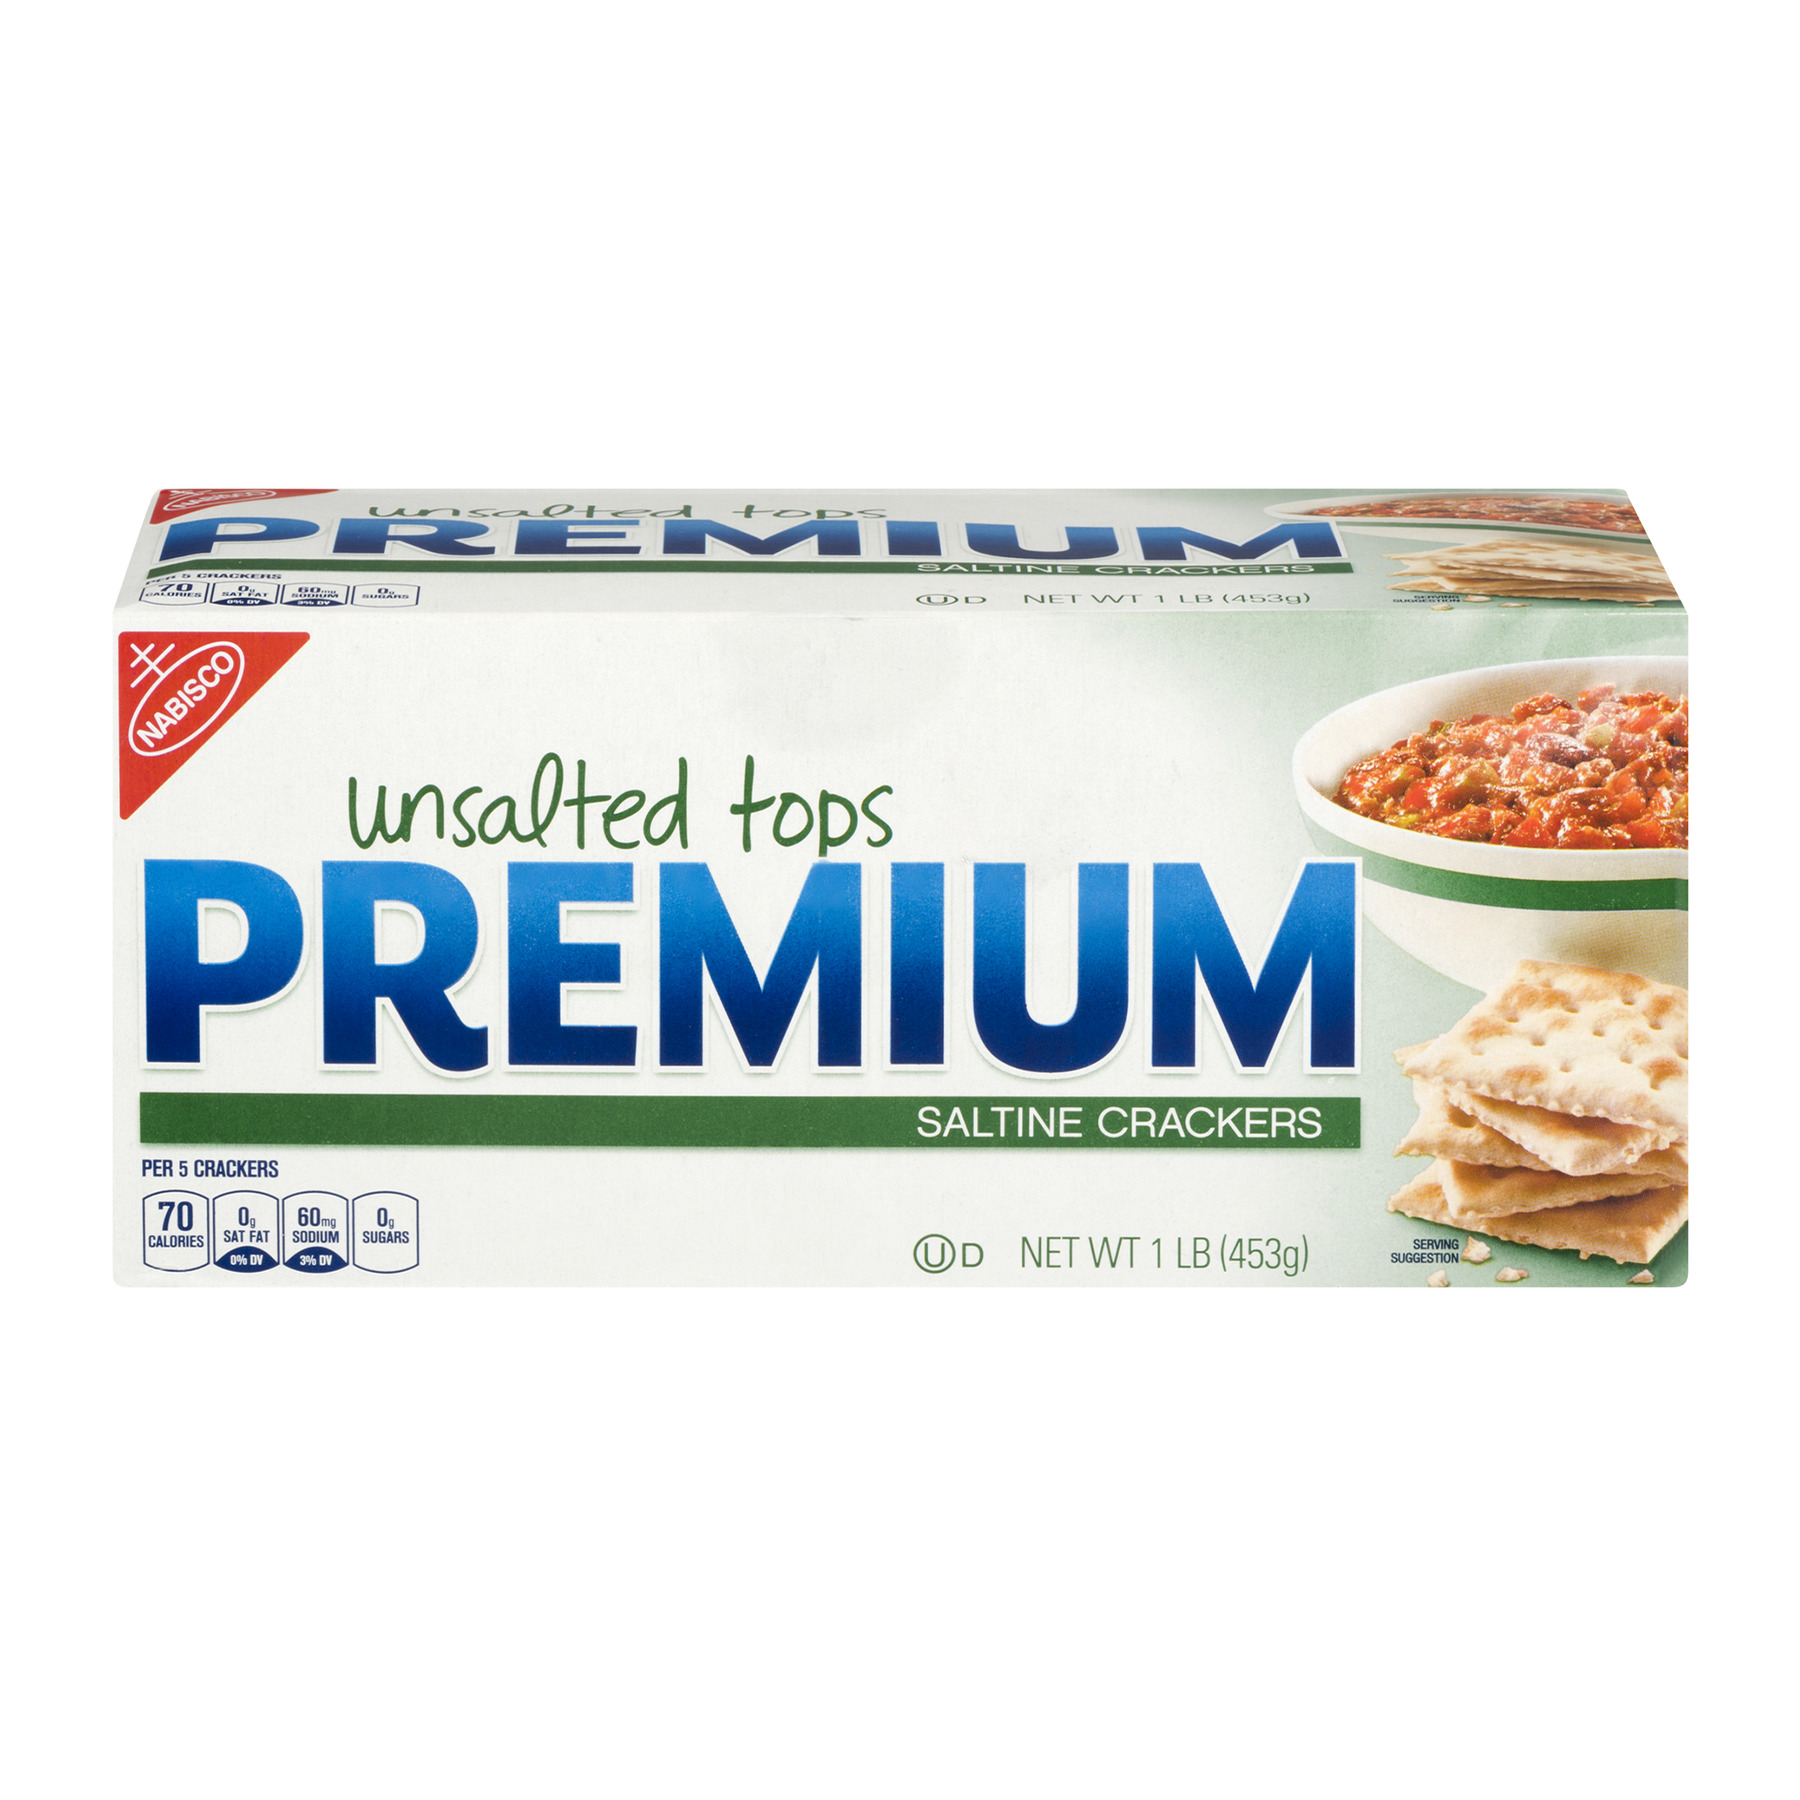 Premium Saltine Crackers Unsalted Tops, 1.0 LB